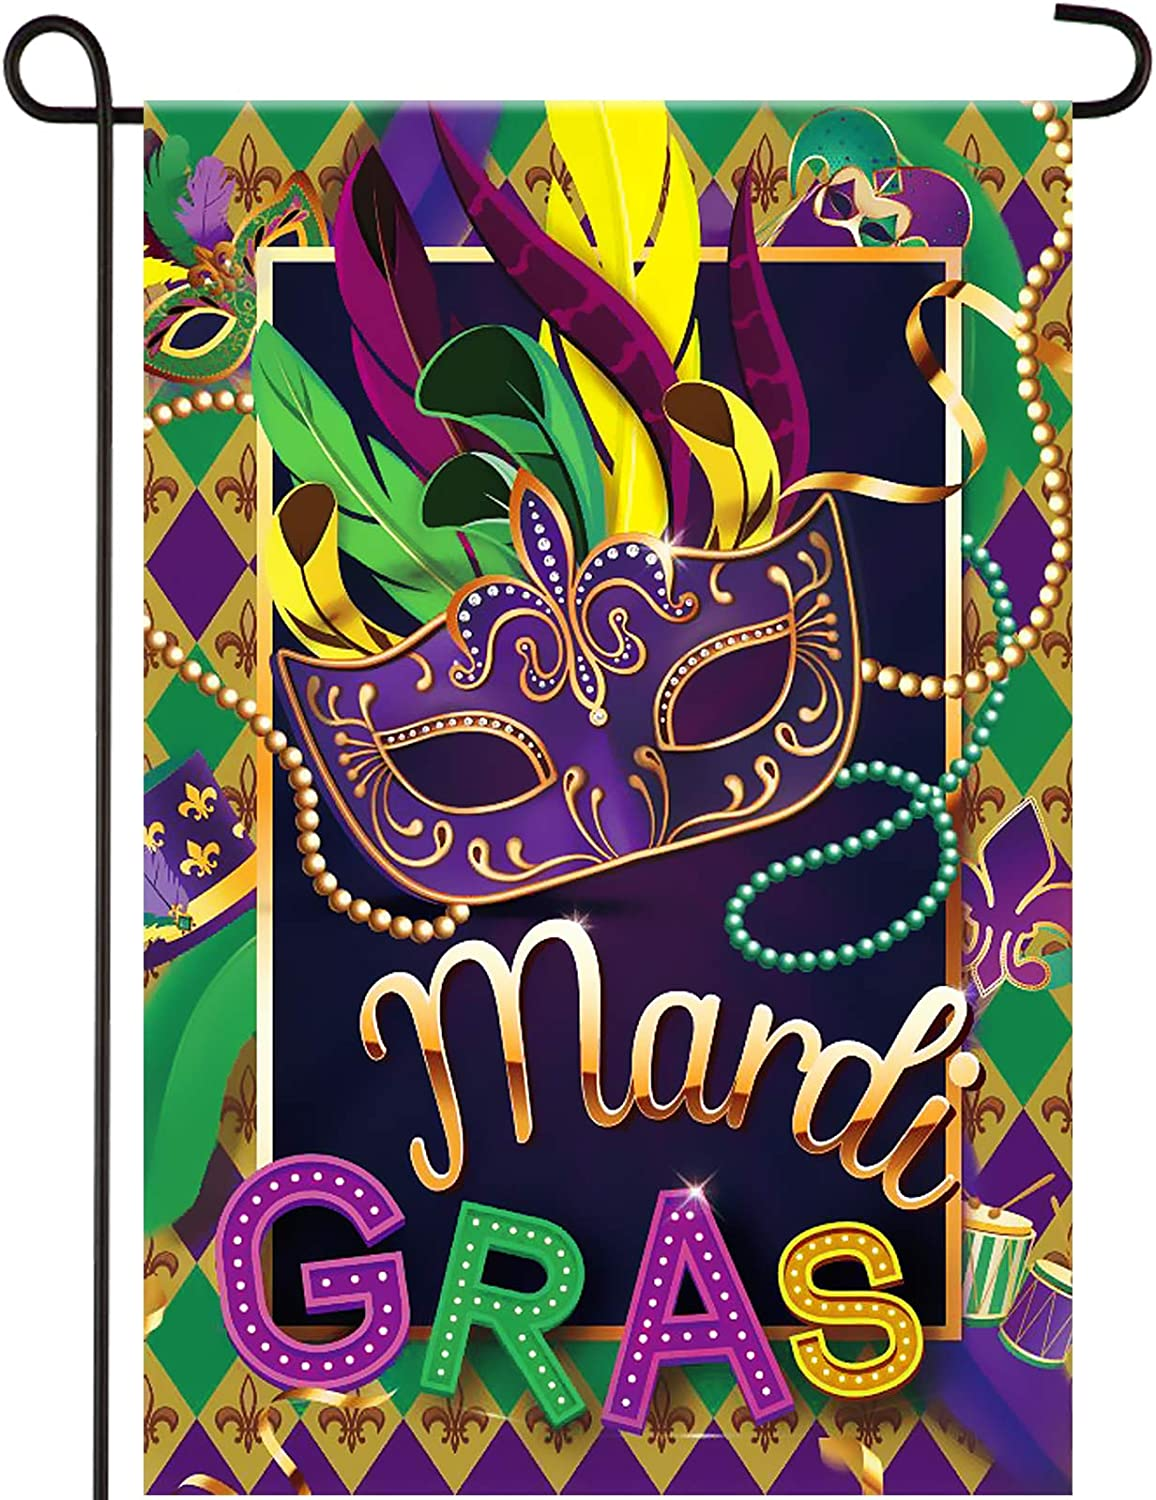 Mardi Gras Garden Flag Decoration Double Sided Mask Beads BuntingFlagsOutdoor Decorative Fleur De Lis Carnival Yard Flag New Orleans Mardi Gras Flag for Home Masquerade Party Holiday